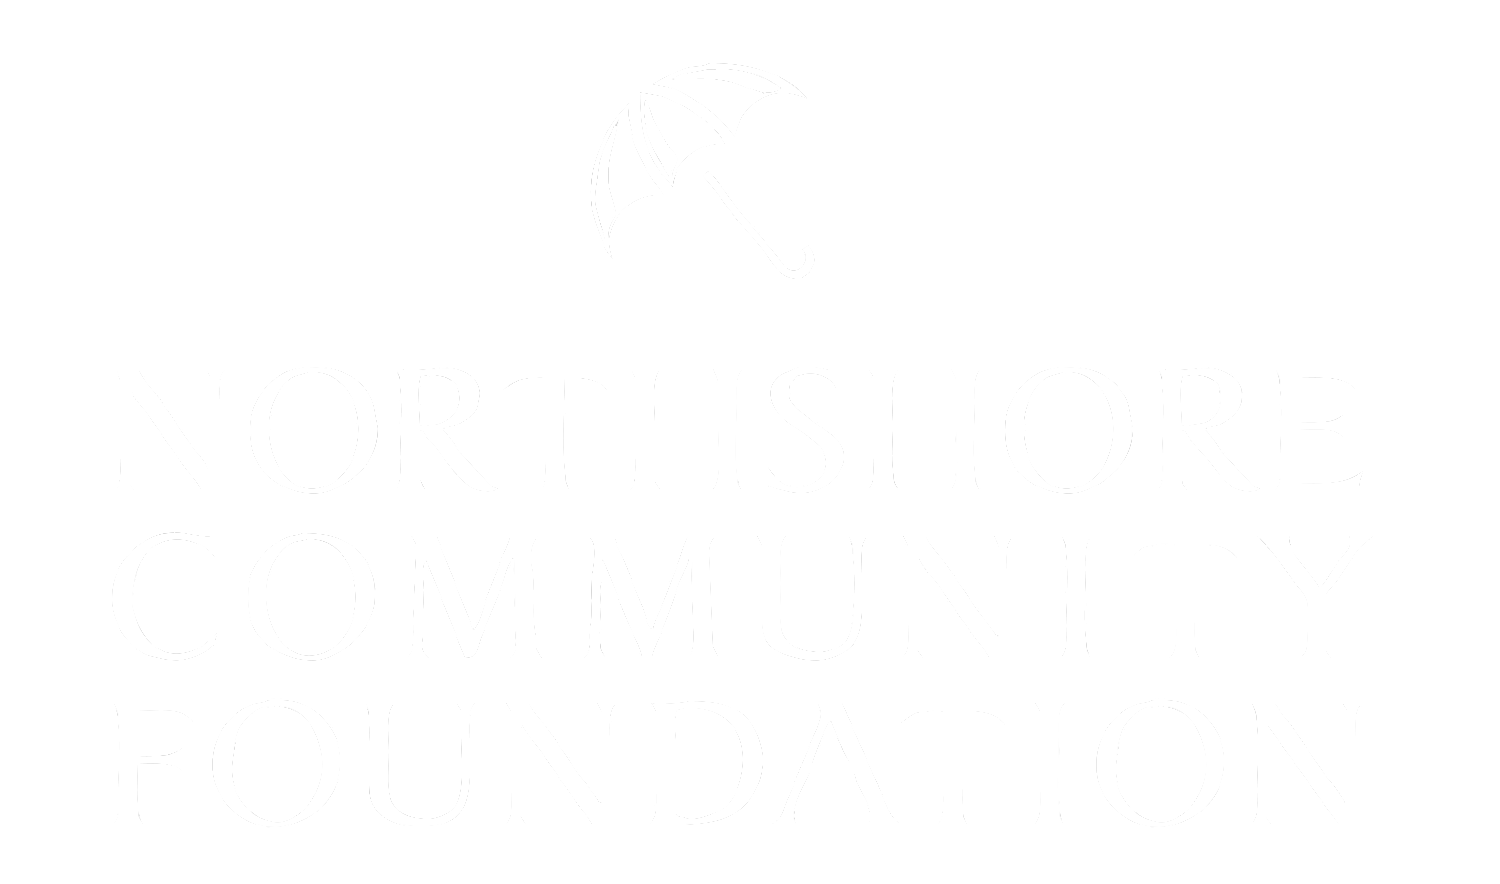 Northshore Community Foundation